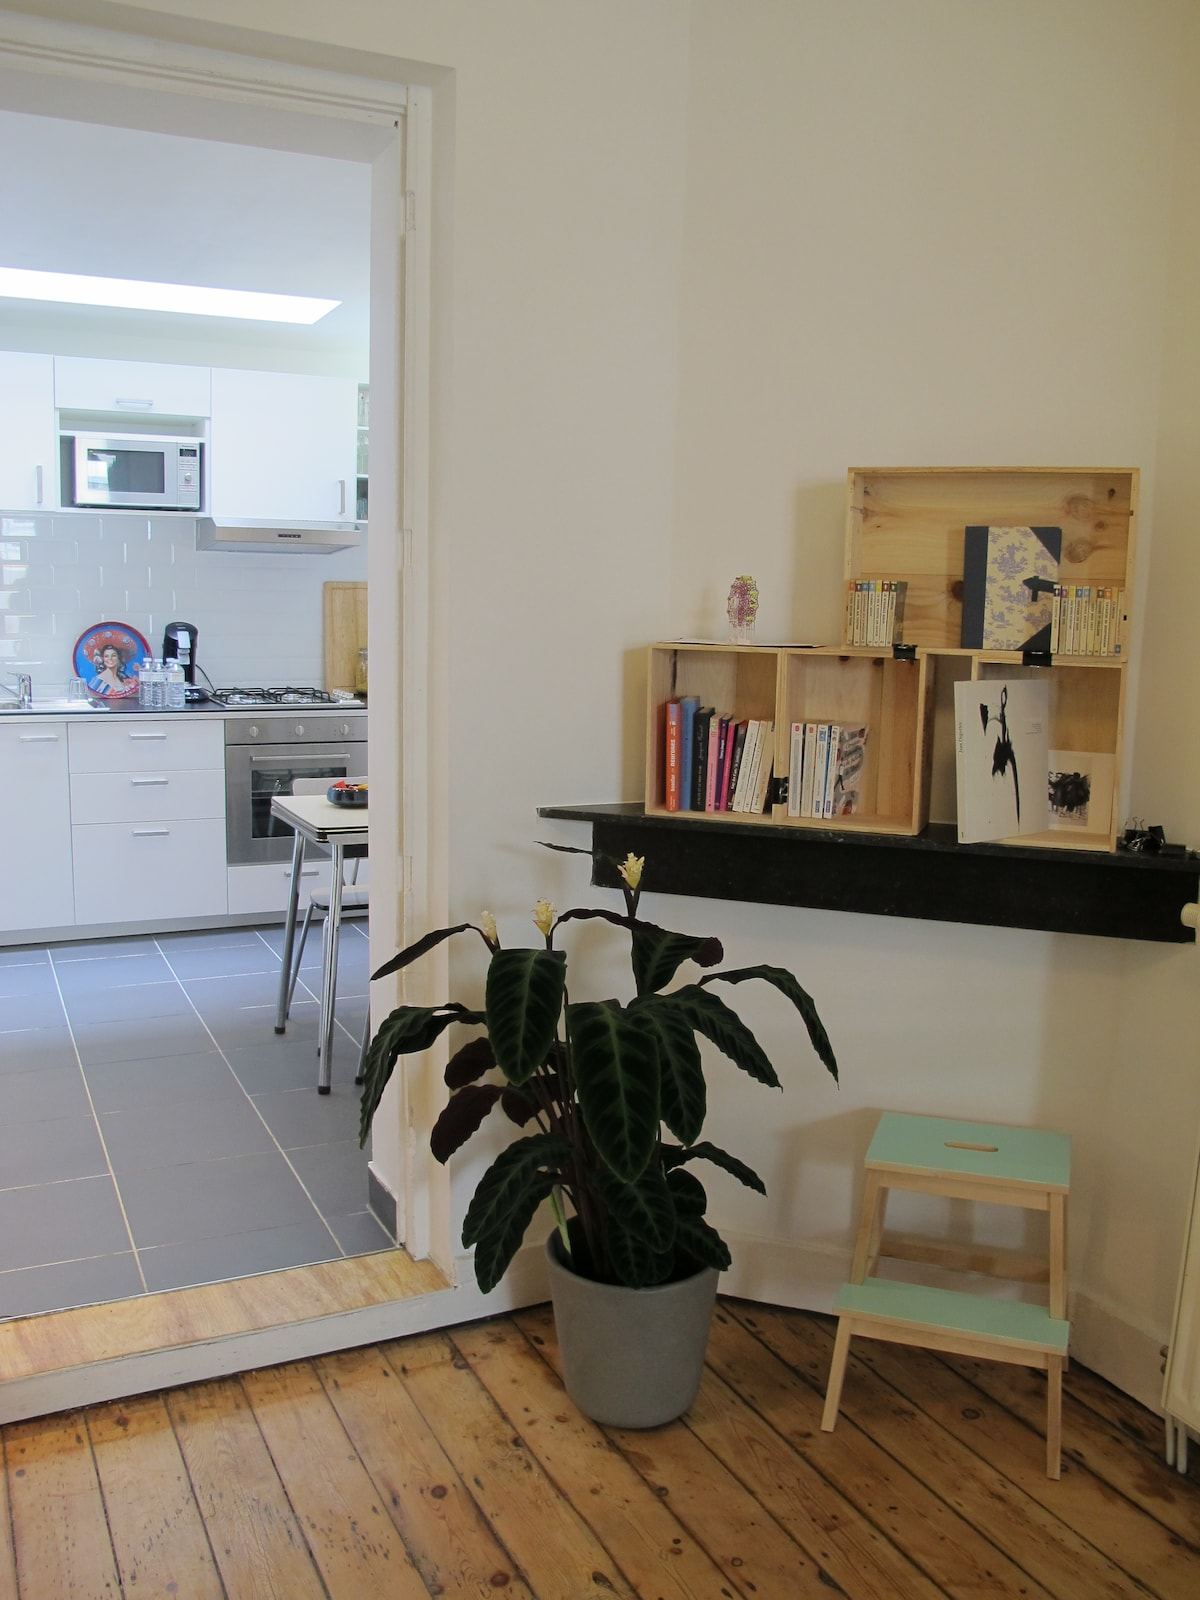 DUPLEX IN THE HEART OF SAINT-GILLES